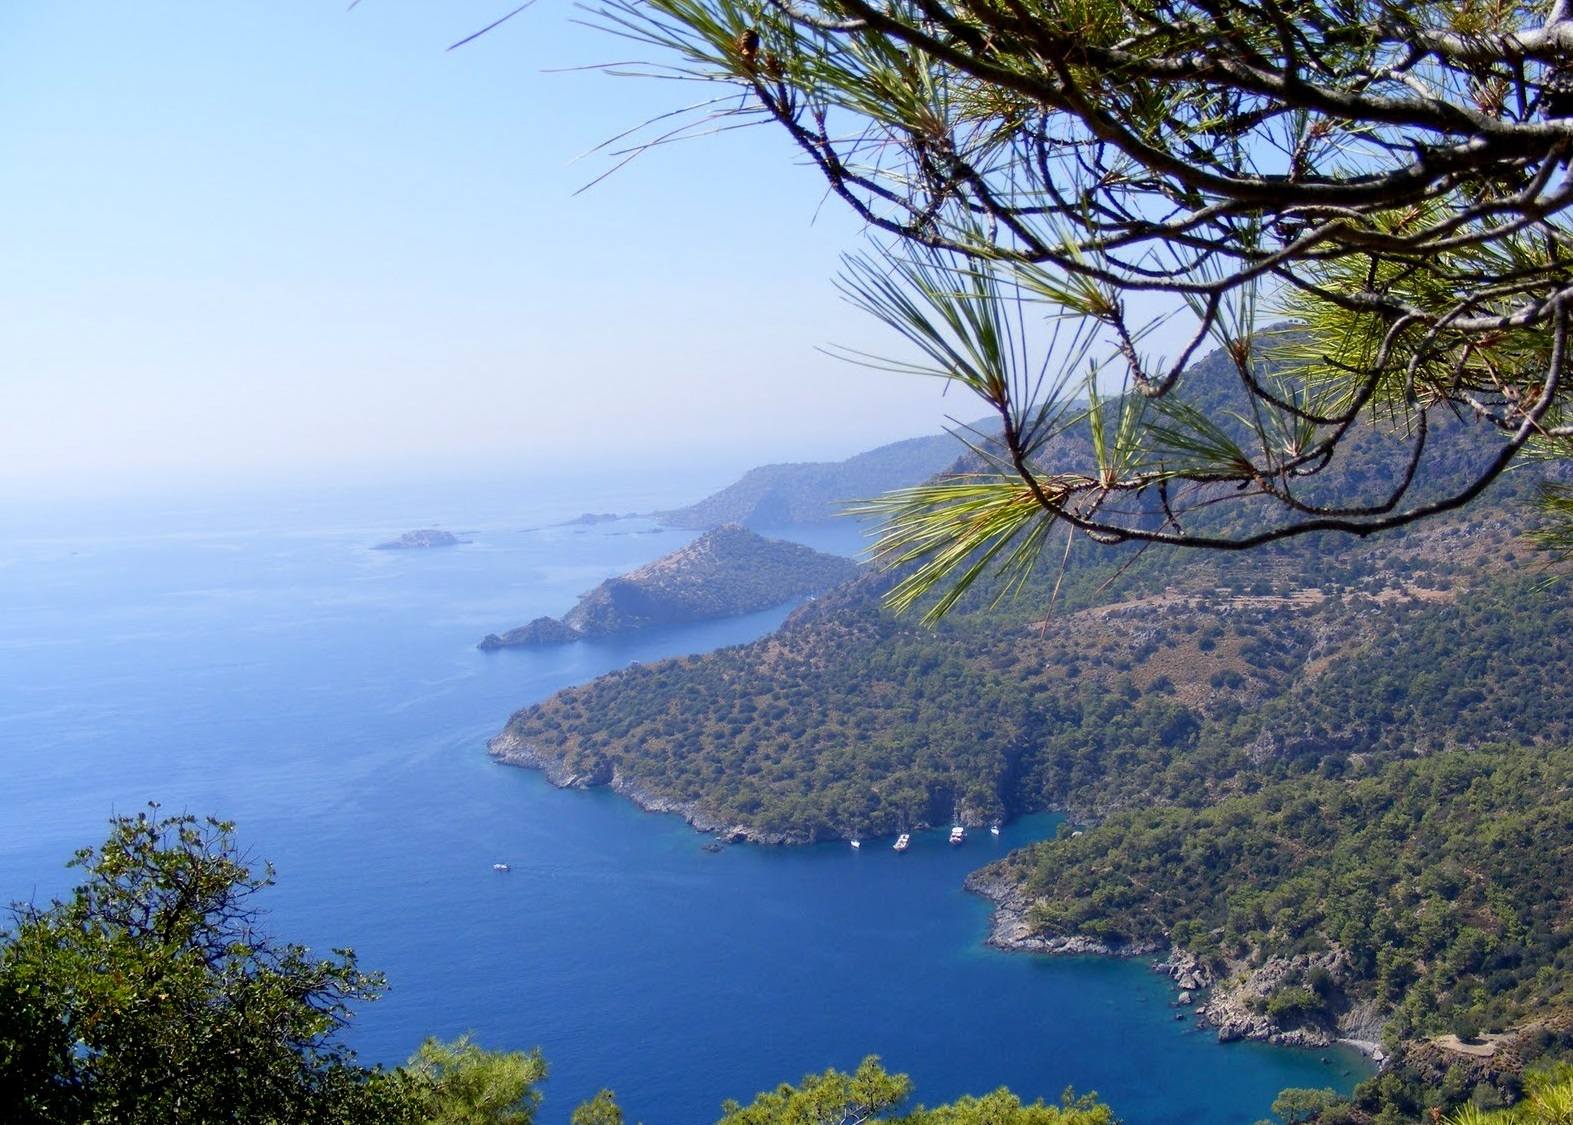 Oludeniz - A Beautiful Island Bay in Turkey - Dreams ...